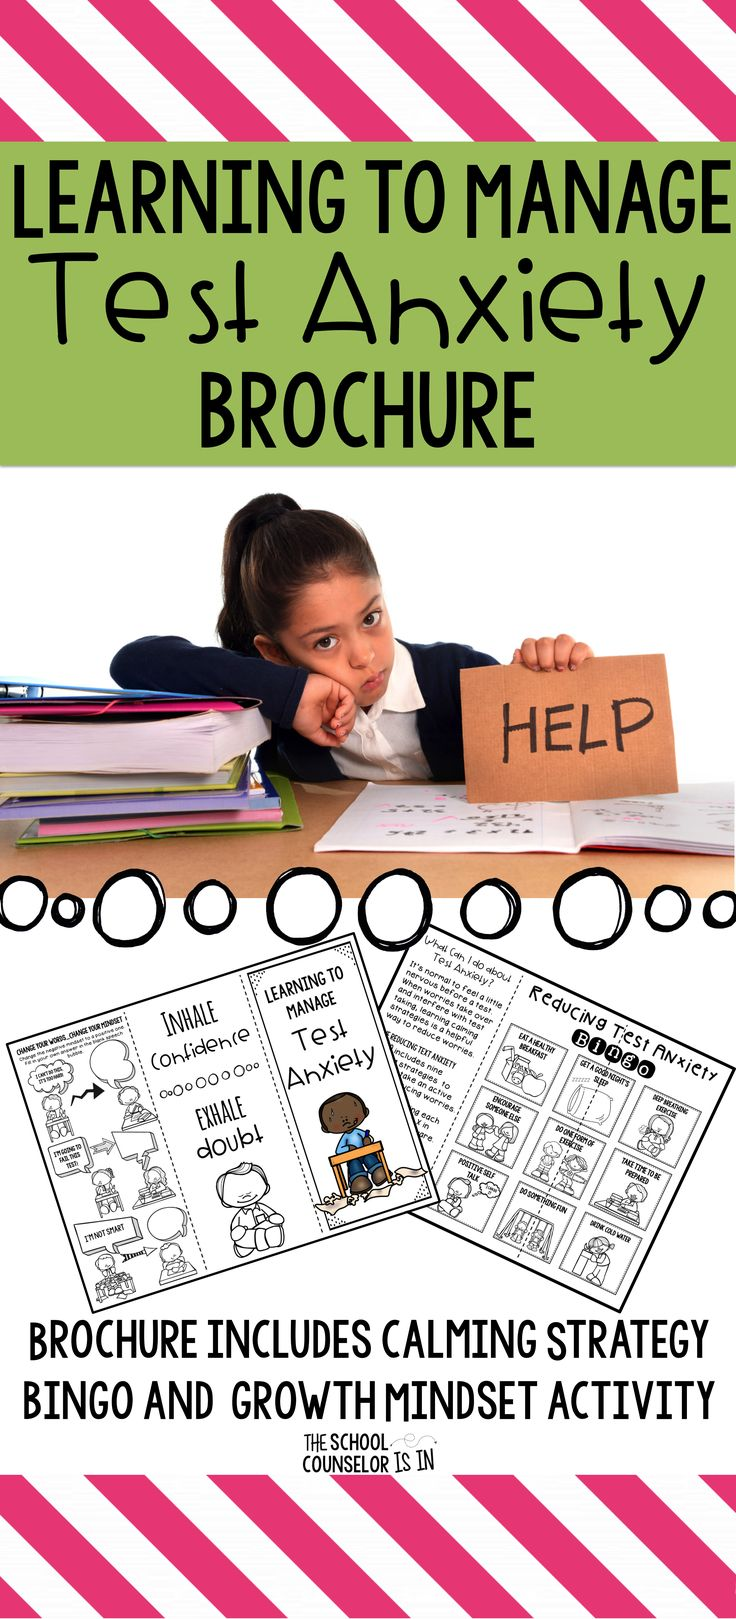 Learning to Manage Test Anxiety Brochure is a great activity to help students reduce worries. Brochure includes Calming Strategy Bingo and Growth Mindset Activity.